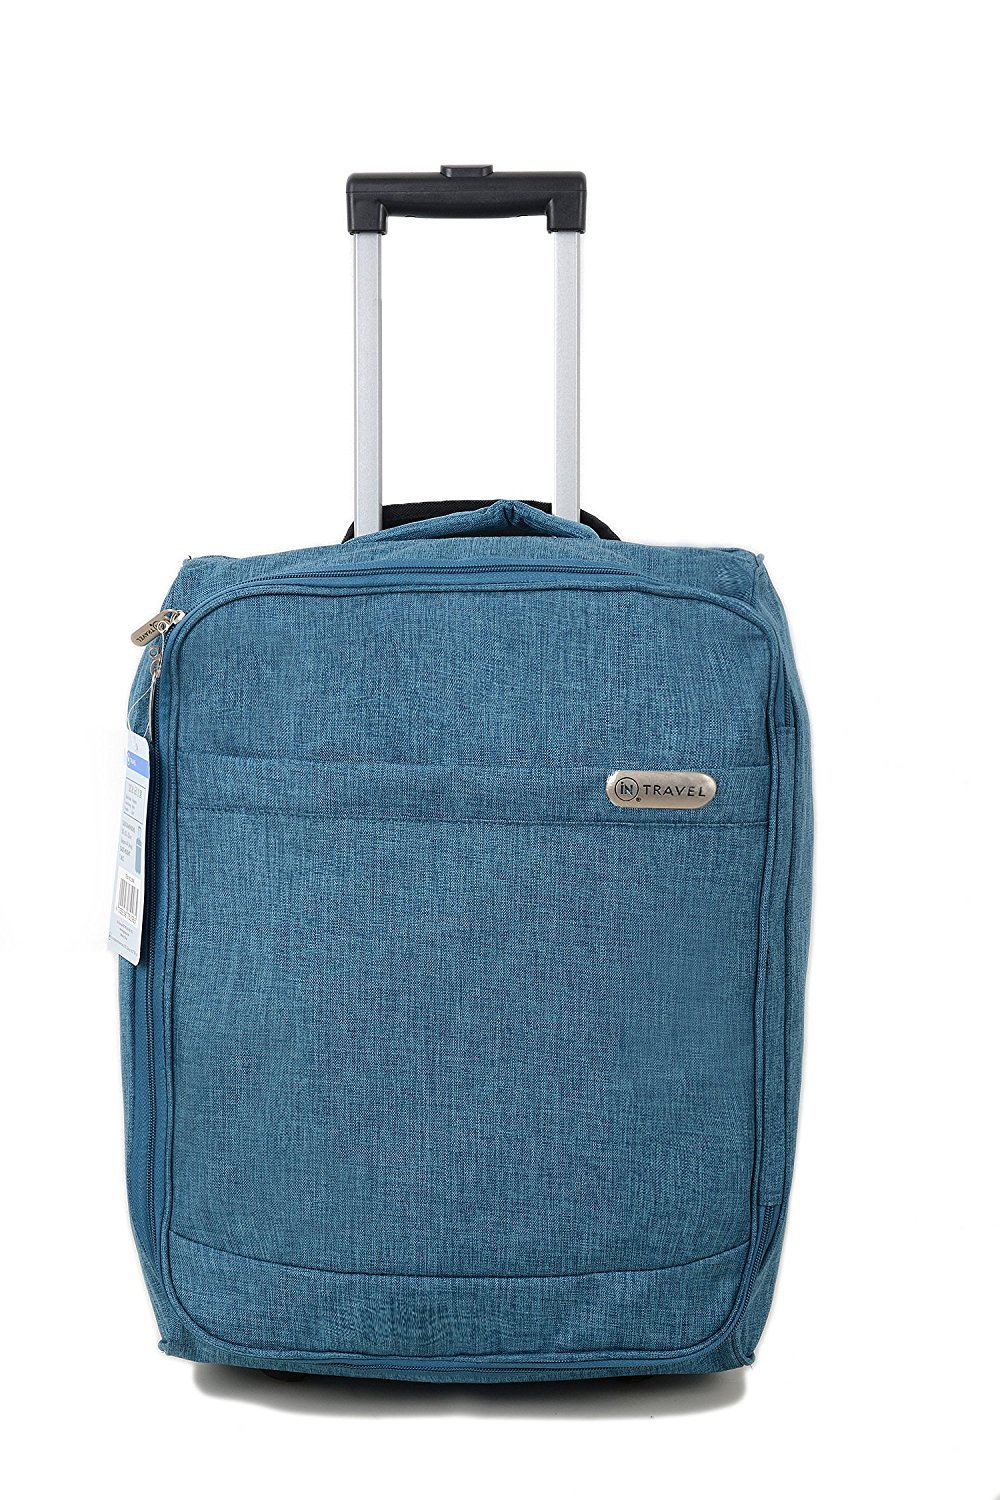 Cabin Bag Trolley with Wheels iN TRAVEL® Hand Luggage Flight Bags Suit Case for Easyjet, British Airways, Virgin, Jet 2 and Many others Airlines or Travel (Teal) INTRAVEL-SLBLUE